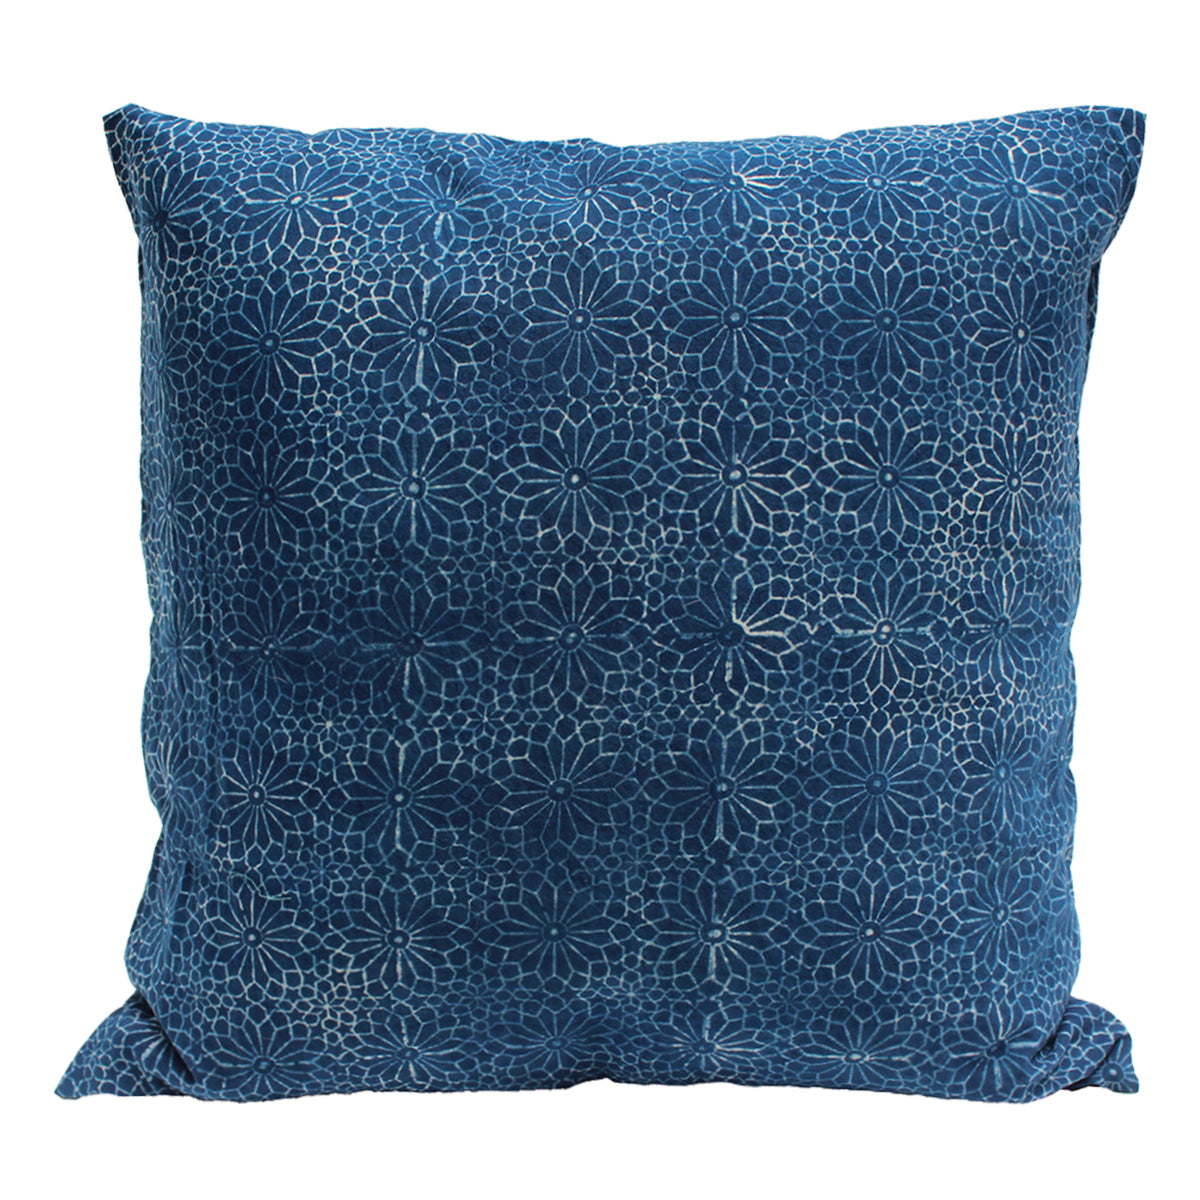 indigo dyed pillow cushion with floral aztec design in paler indigo.